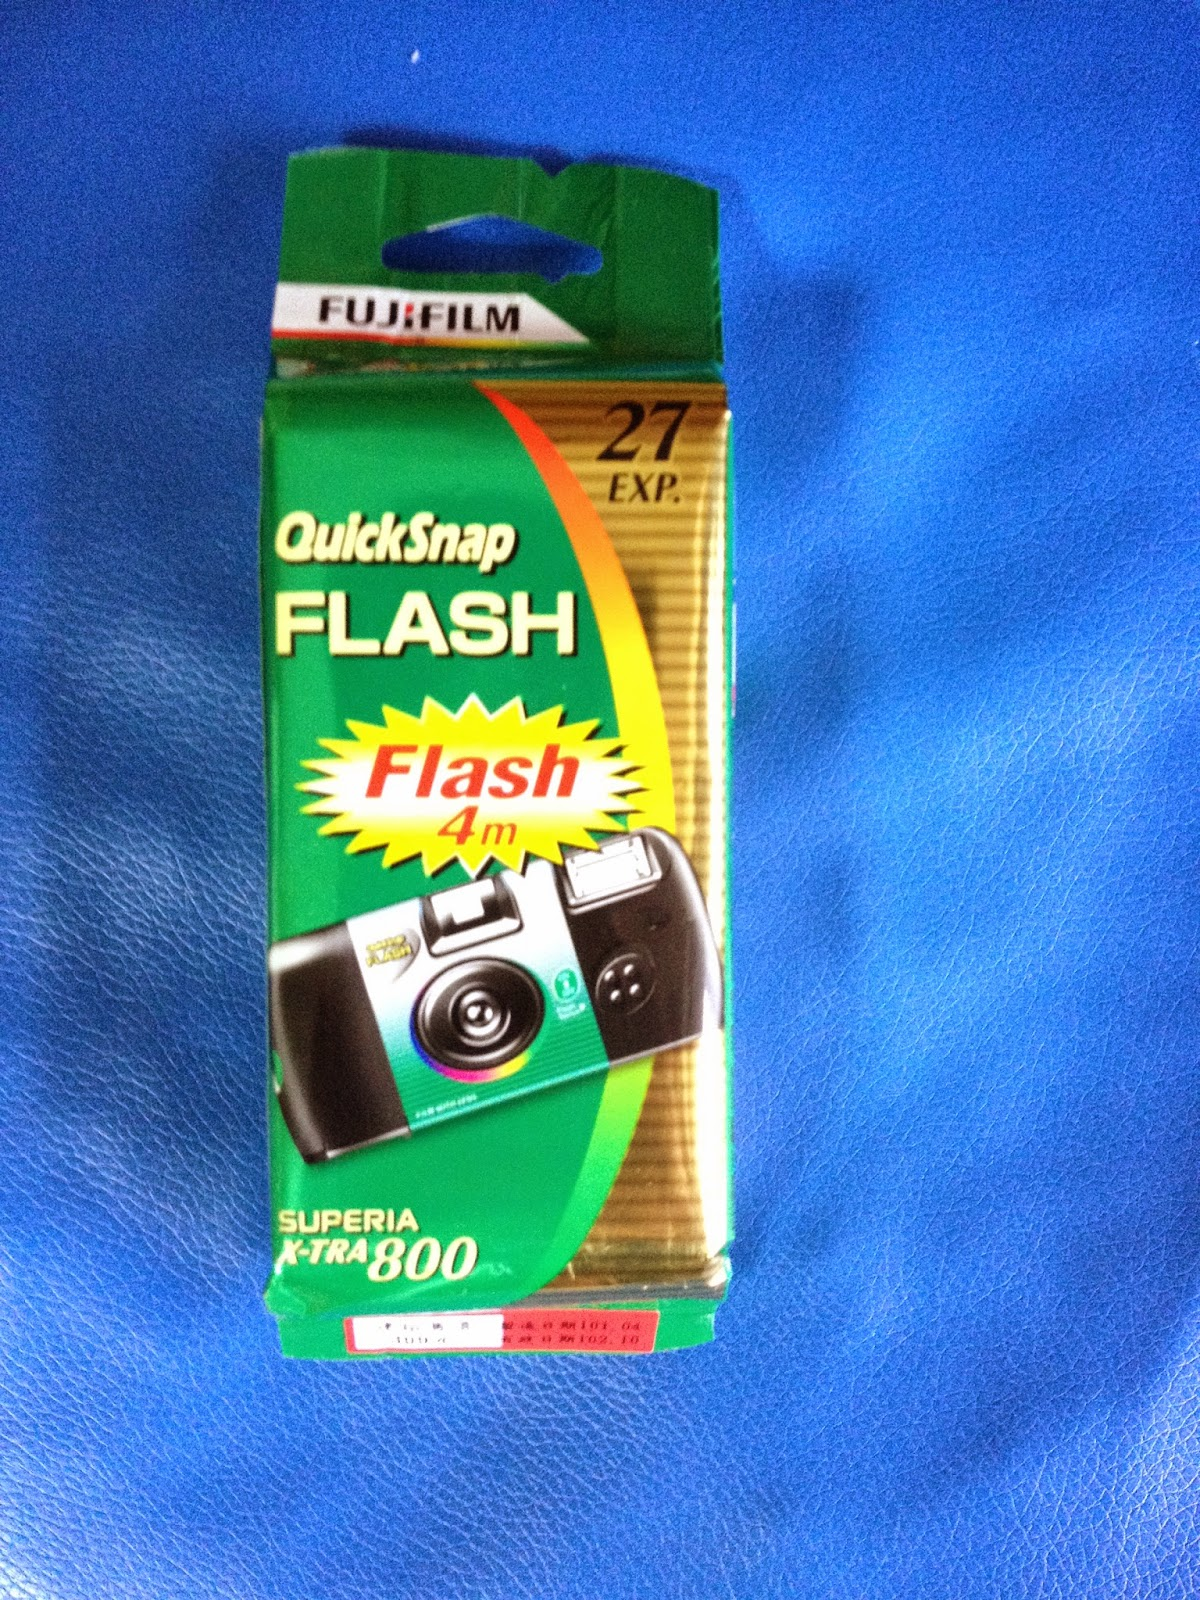 Fujifilm Quicksnap Flash X Tra 800 Review Fotofilm Camera Circuit Further Disposable What Seriously